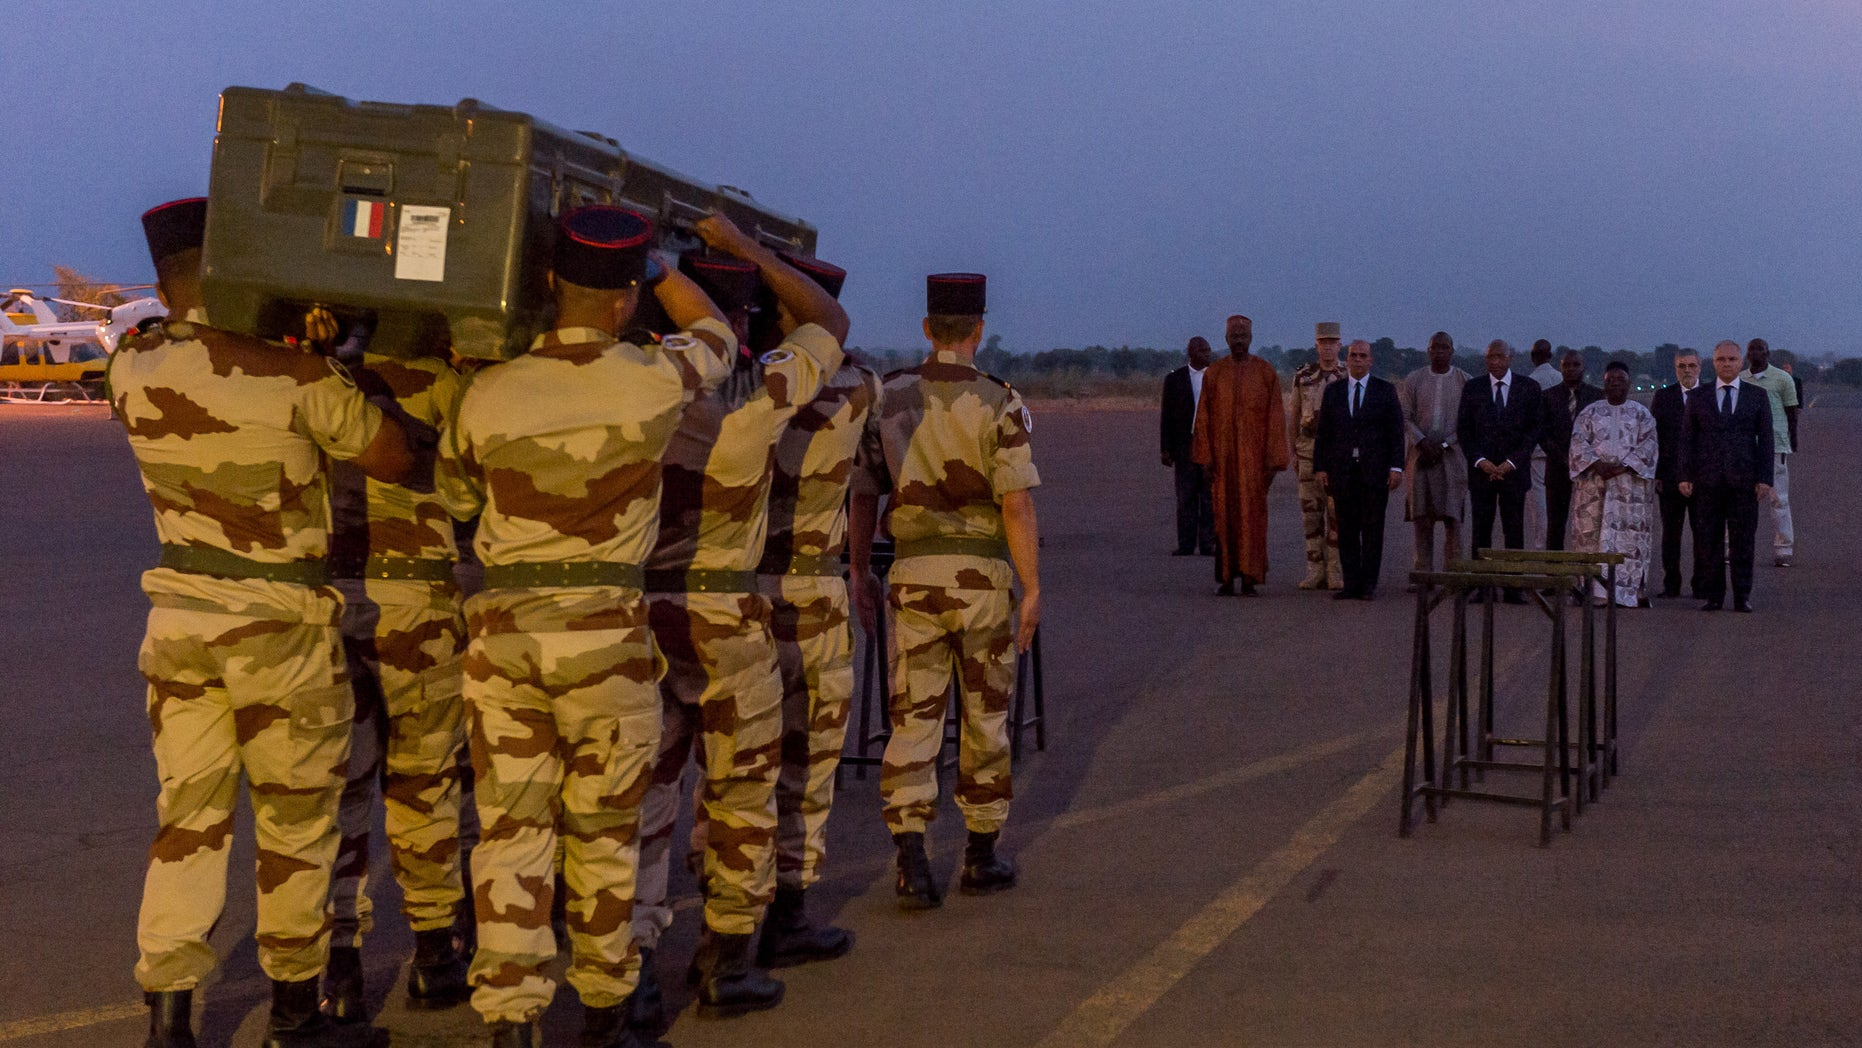 This photo taken and provided Sunday, Nov. 3, 2013, by the ECPAD or French army's image division, shows french soldiers carrying the casket of one of the two journalists executed in northern Mali, during a military ceremony of the removal of the bodies at Bamako military airport in Mali. The slayings of Ghislaine Dupont, 51, and Claude Verlon, 58, shocked France and underscored how insecure parts of northern Mali remain months after a French-led military intervention against al-Qaida and other extremists. (AP Photo/Gilles Gesquiere, ECPAD)